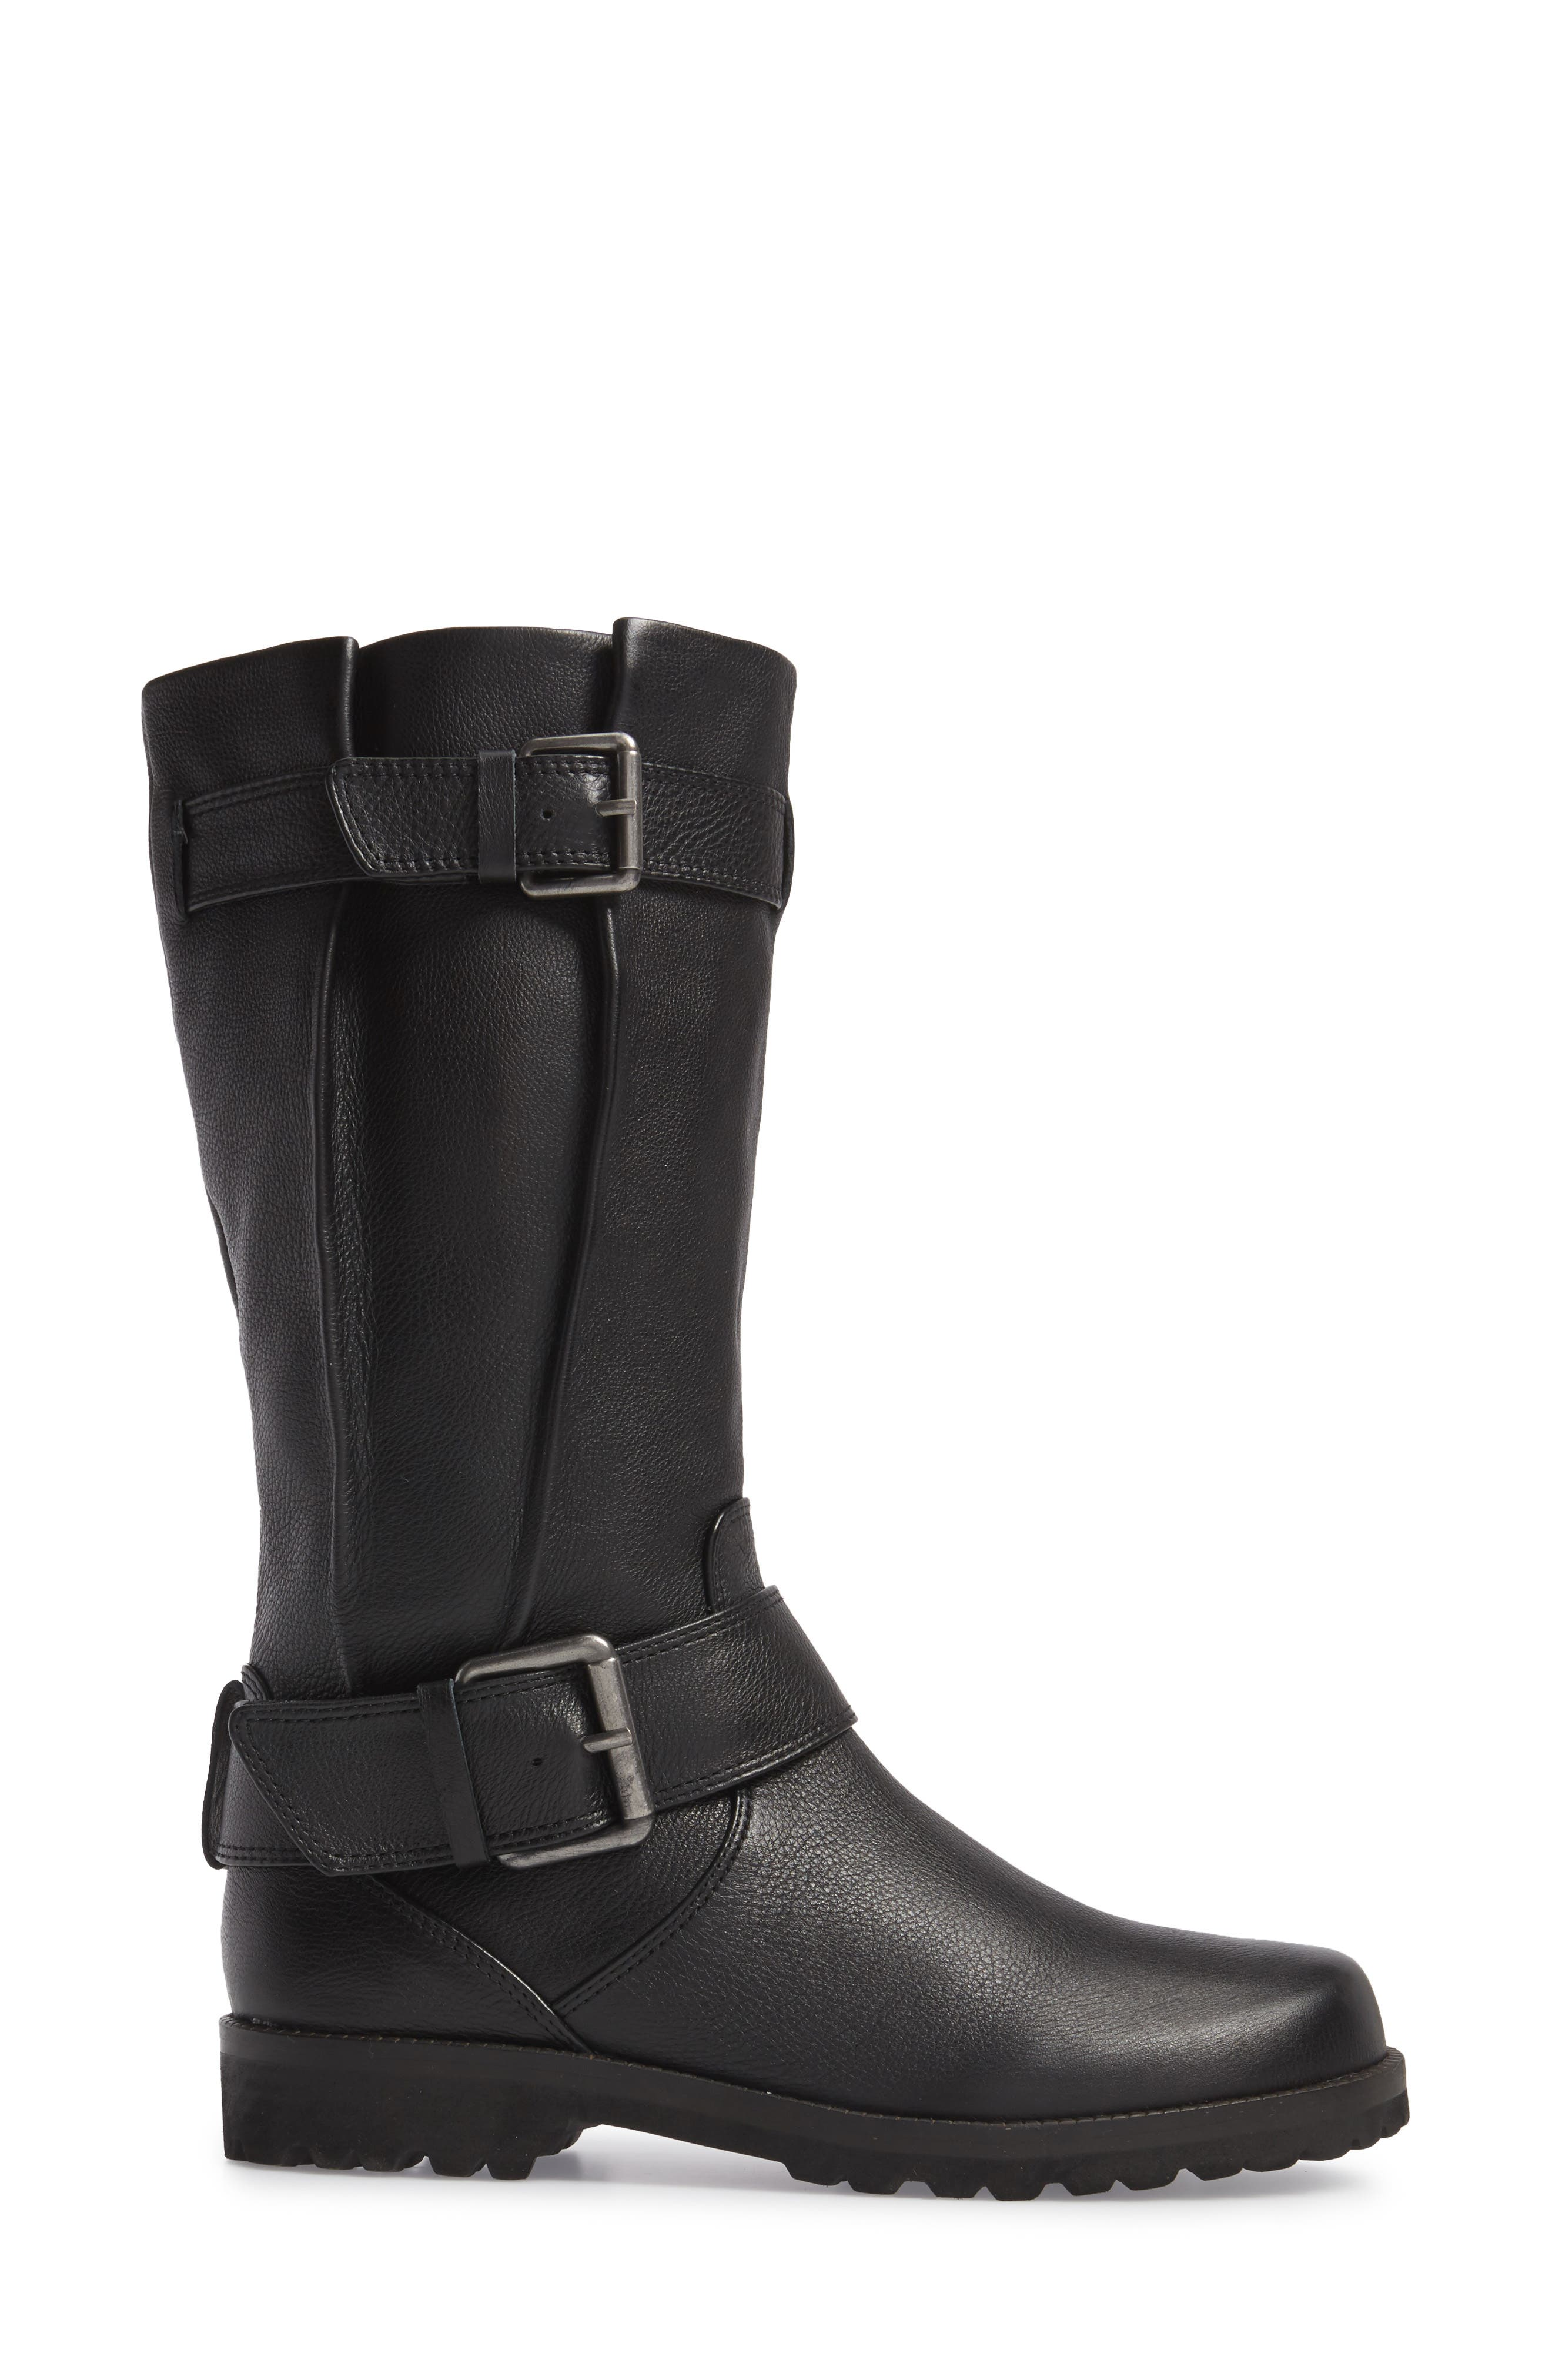 GENTLE SOULS BY KENNETH COLE, 'Buckled Up' Boot, Alternate thumbnail 3, color, BLACK